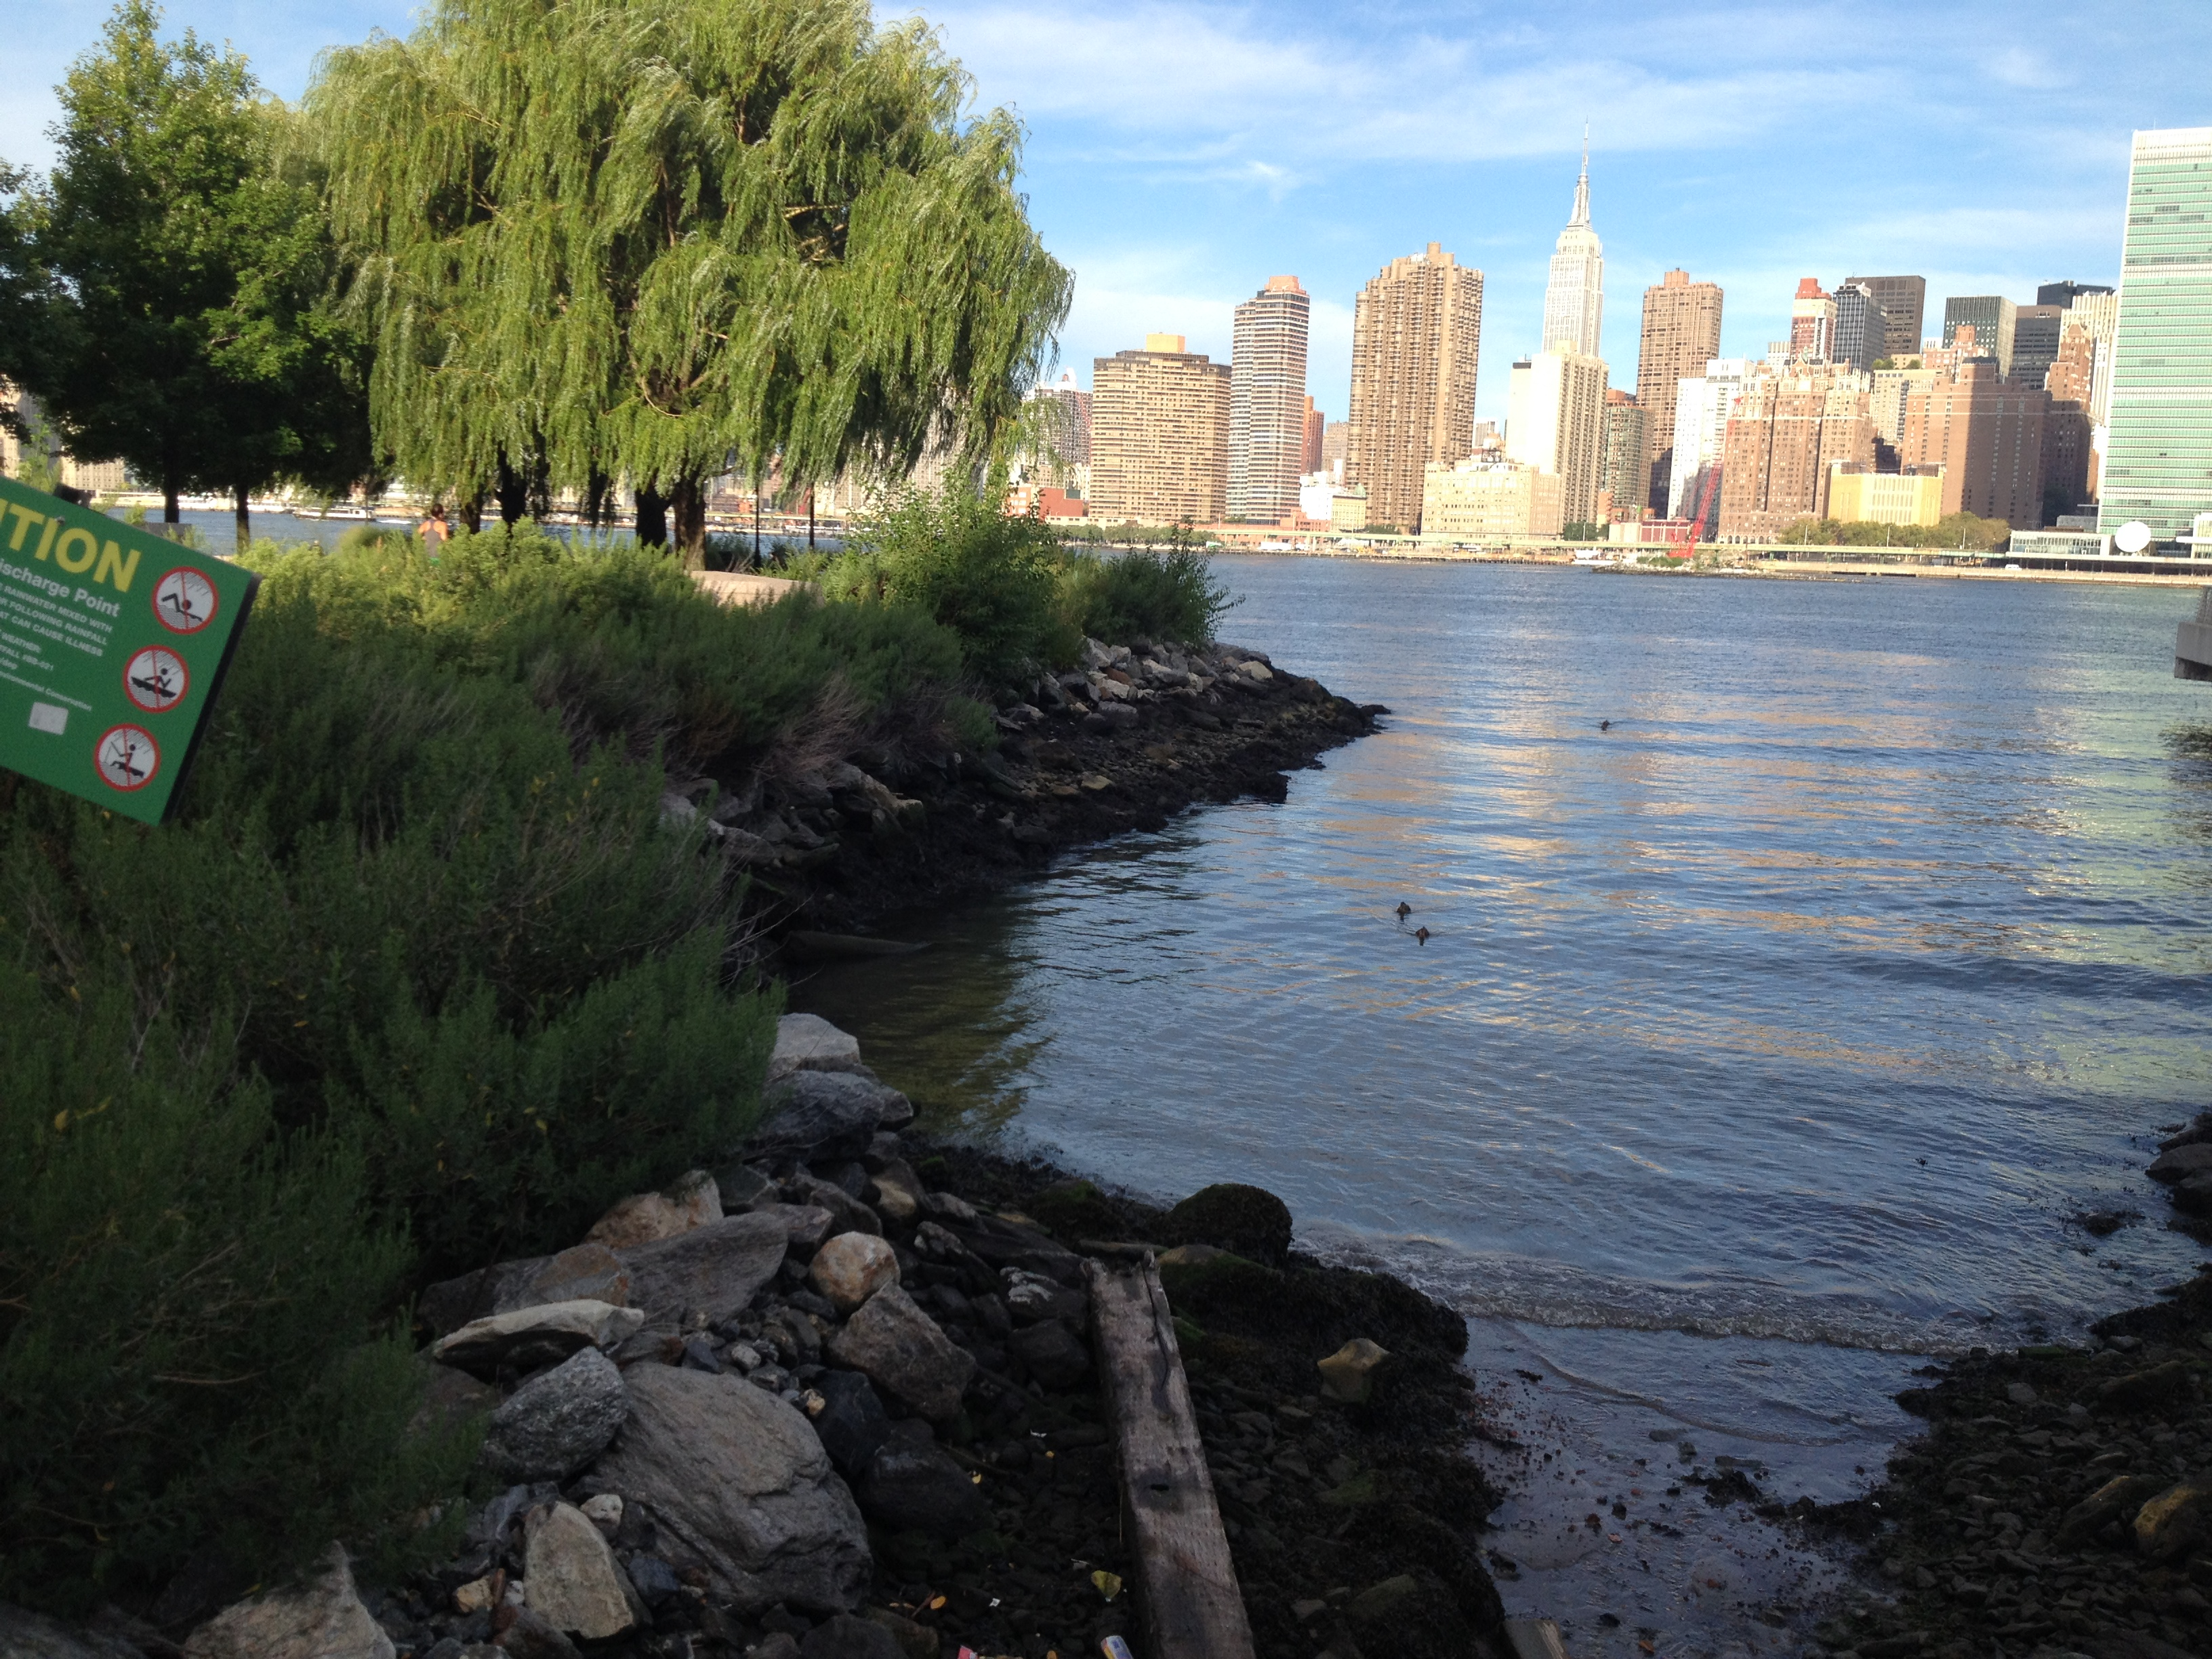 A rocky point overlooking the skyline of NYC with some trees and grasses